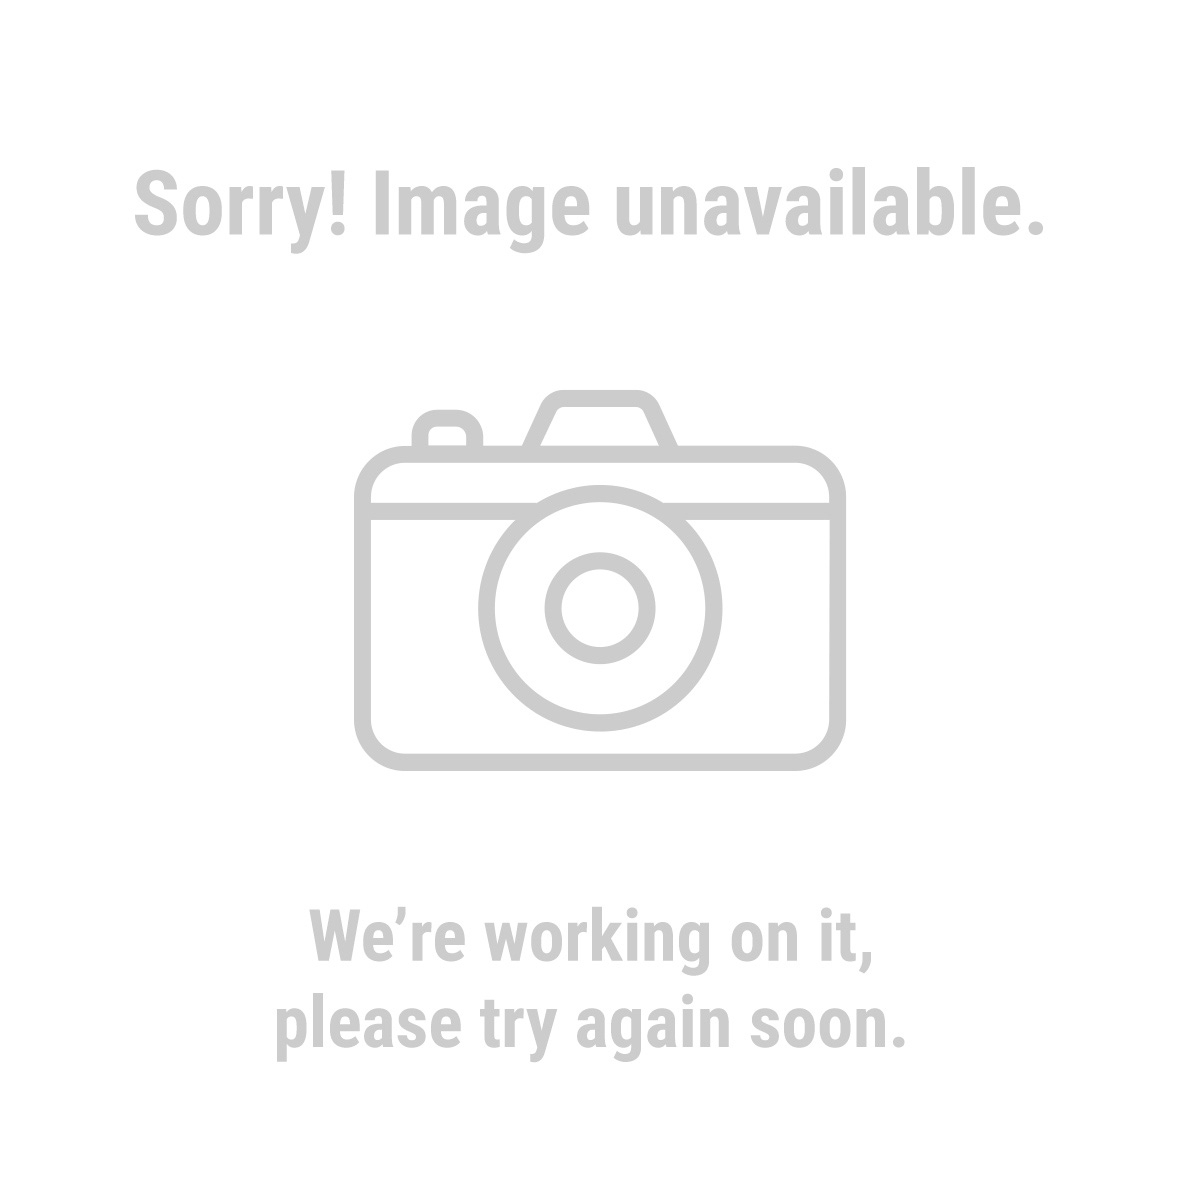 Western Safety 97442 Mechanic's Gloves with Spandex, Large